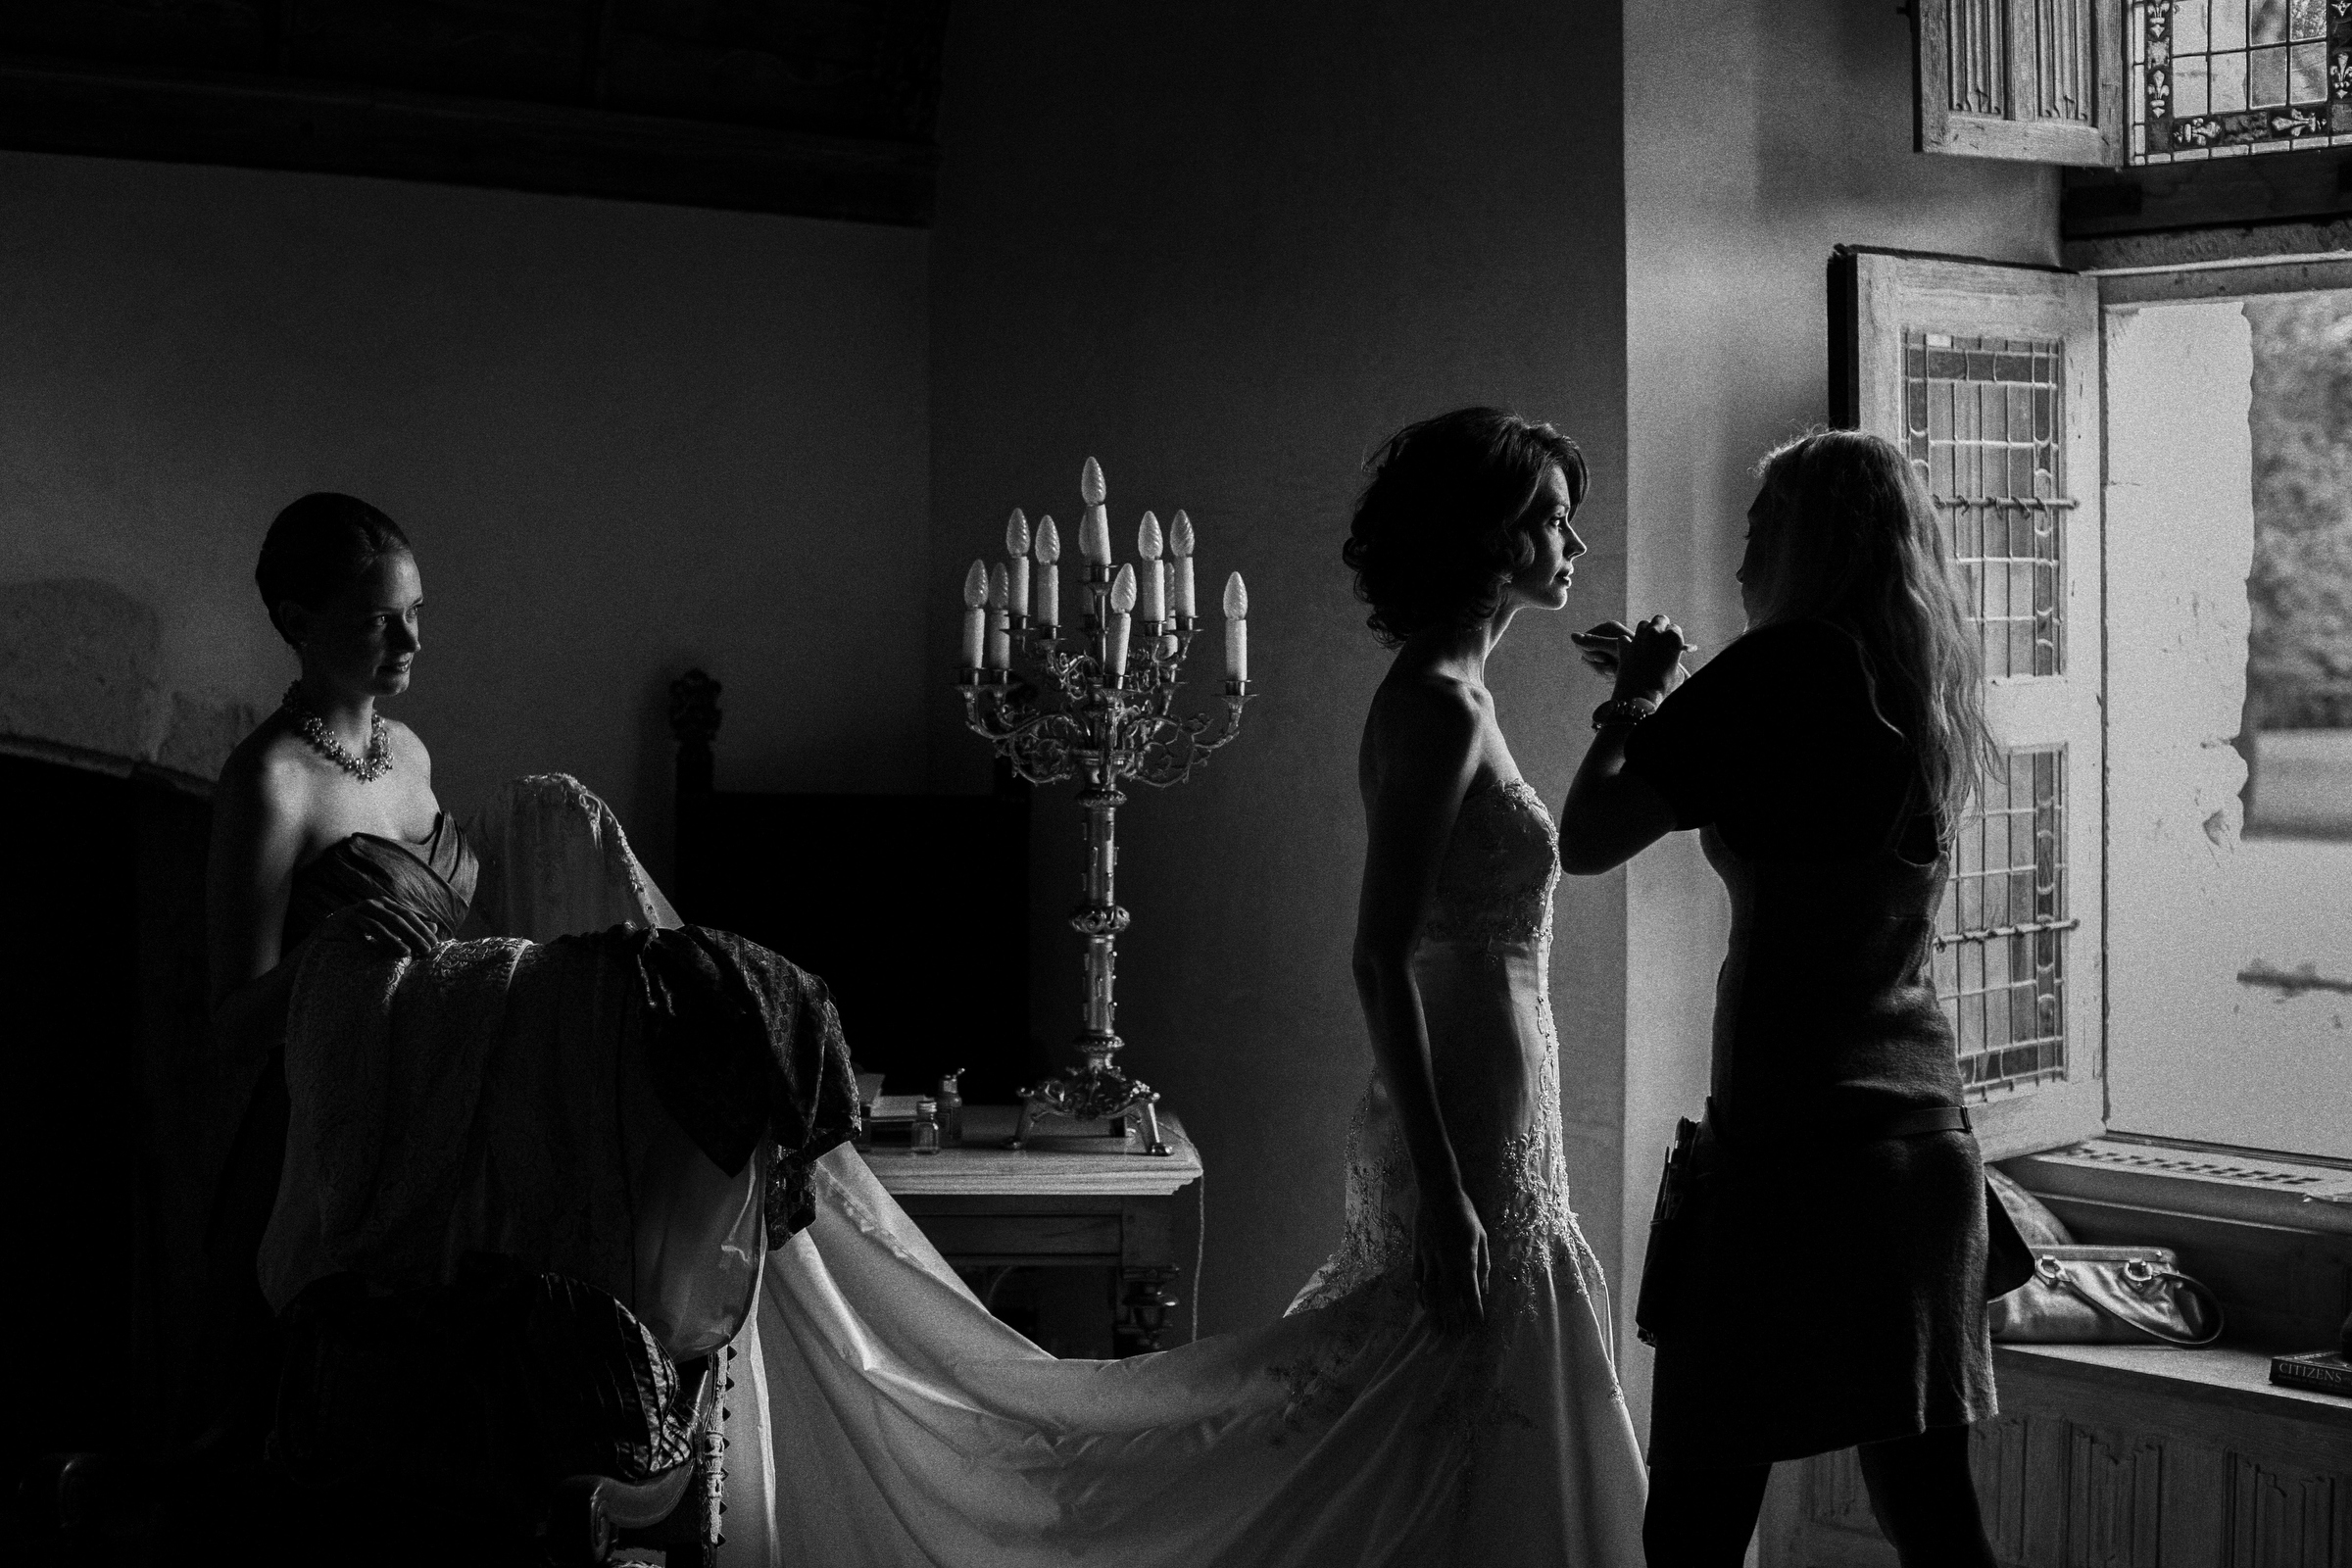 make-up-artist-puts-finishing-touches-on-bride-before-ceremony-jeff-ascough